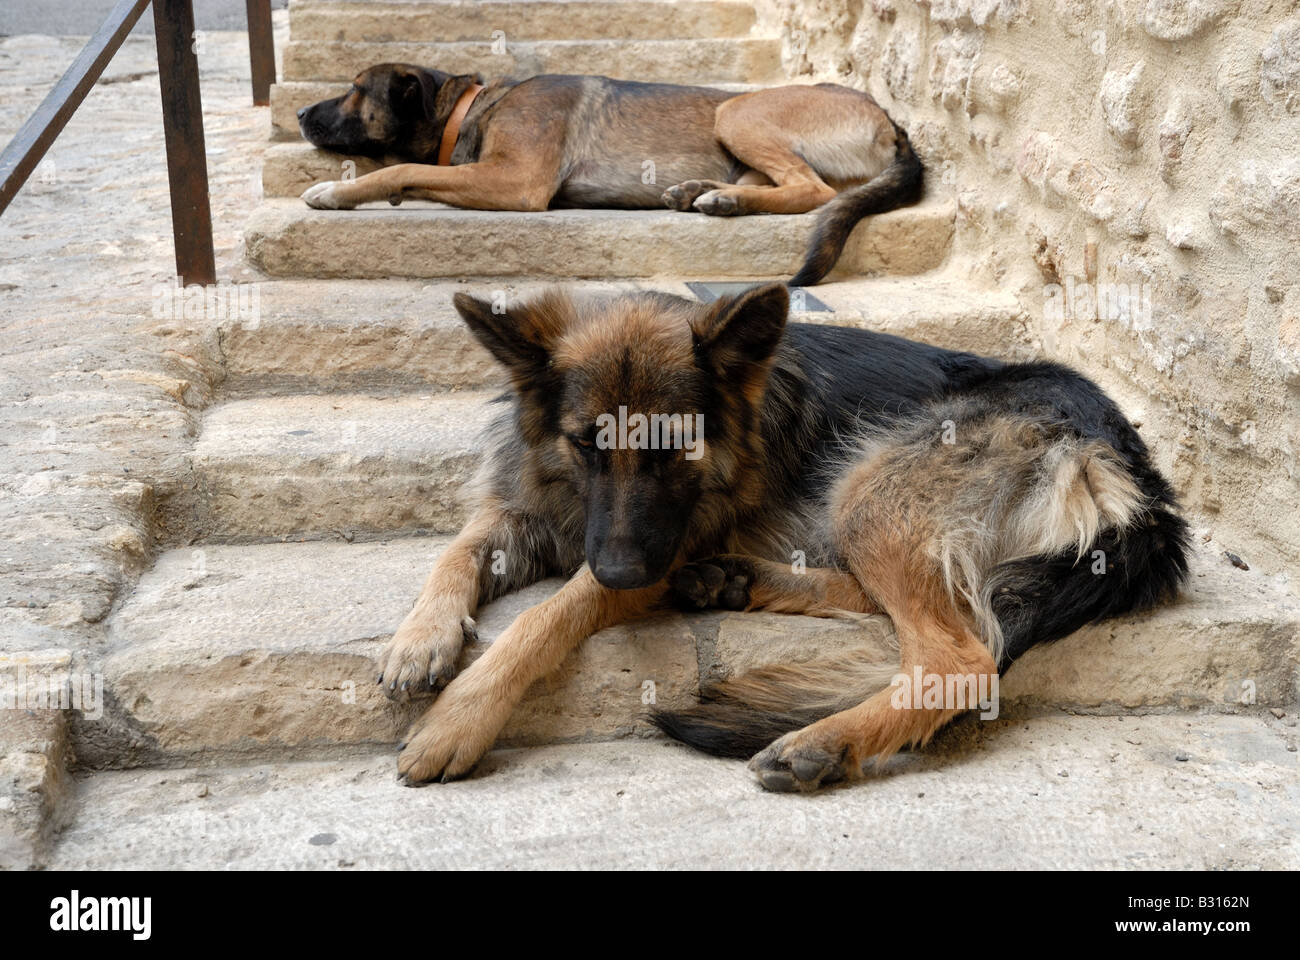 Two dogs laze around in Gordes, southern France - Stock Image